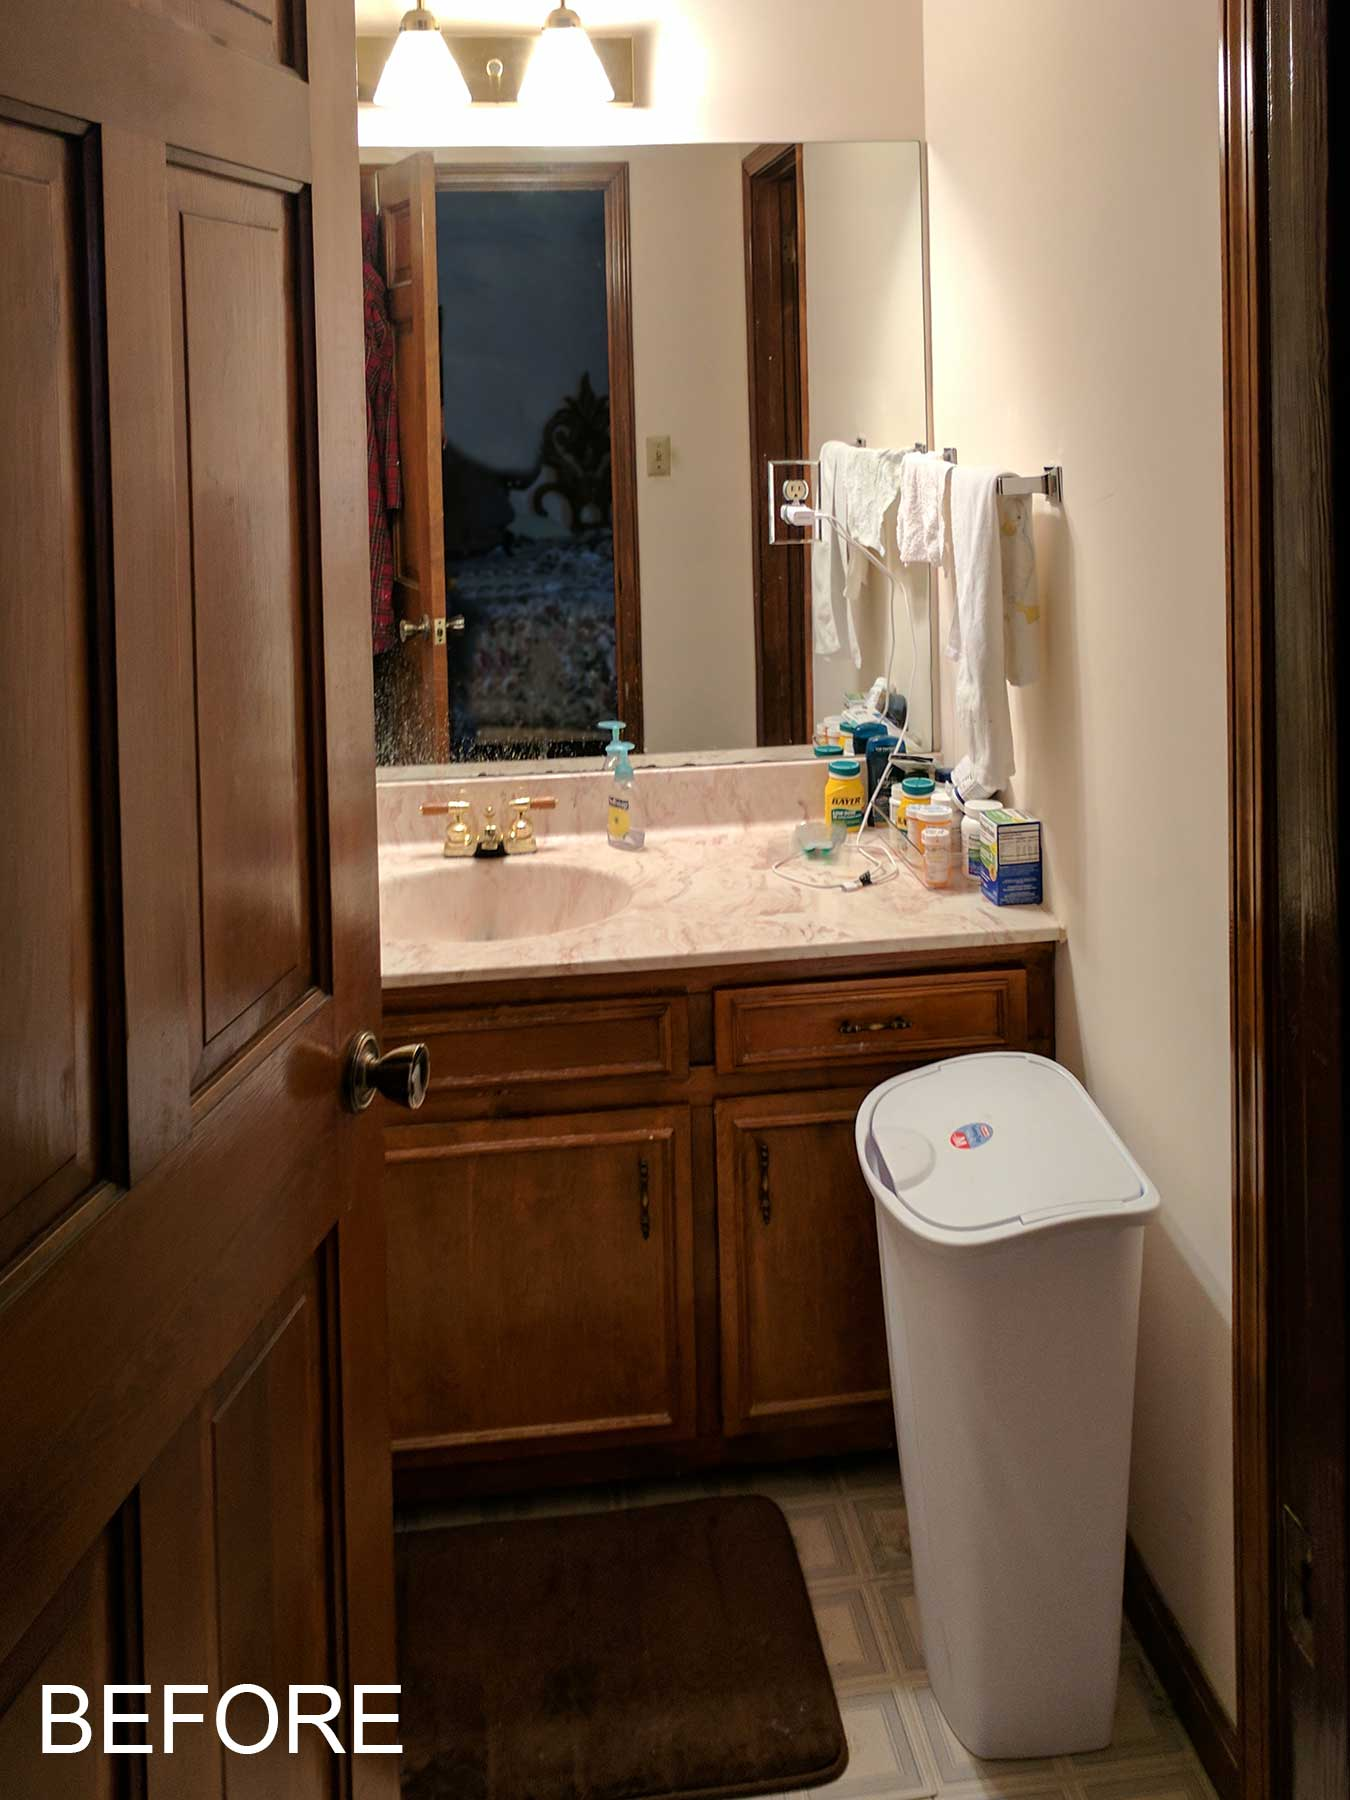 View of bathroom vanity before remodeling